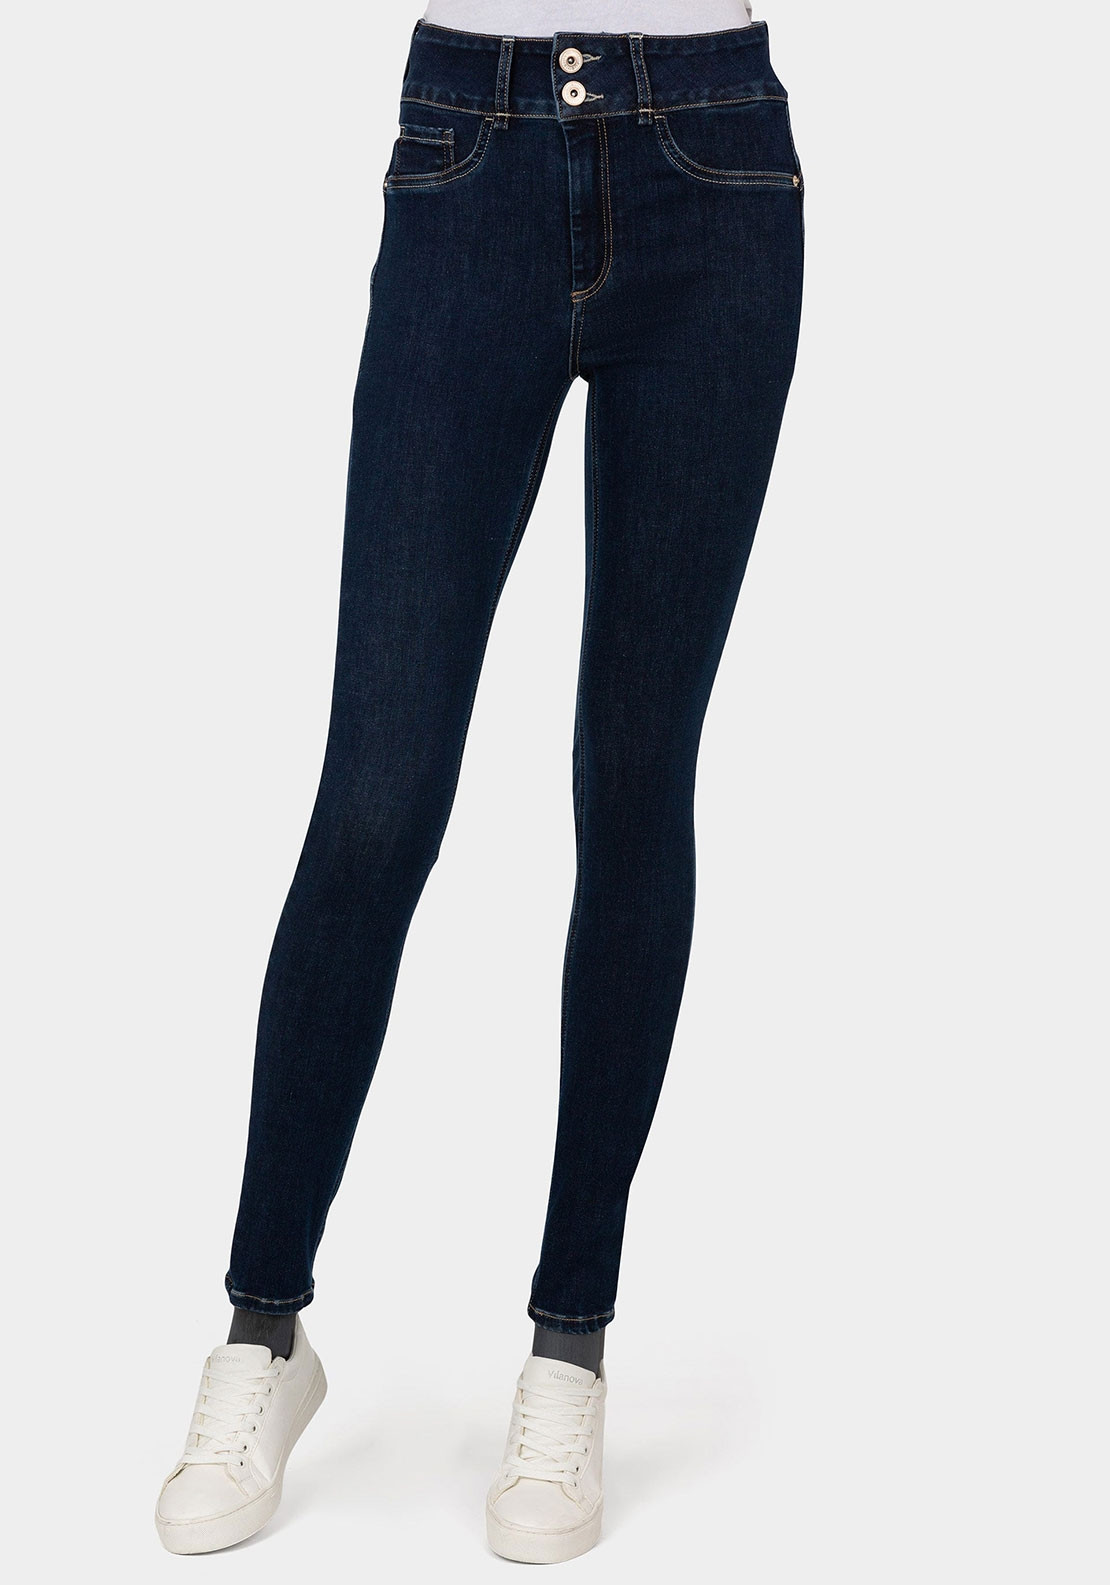 Tiffosi One Size Double Comfort Beauty Effect Jeans, Dark Blue